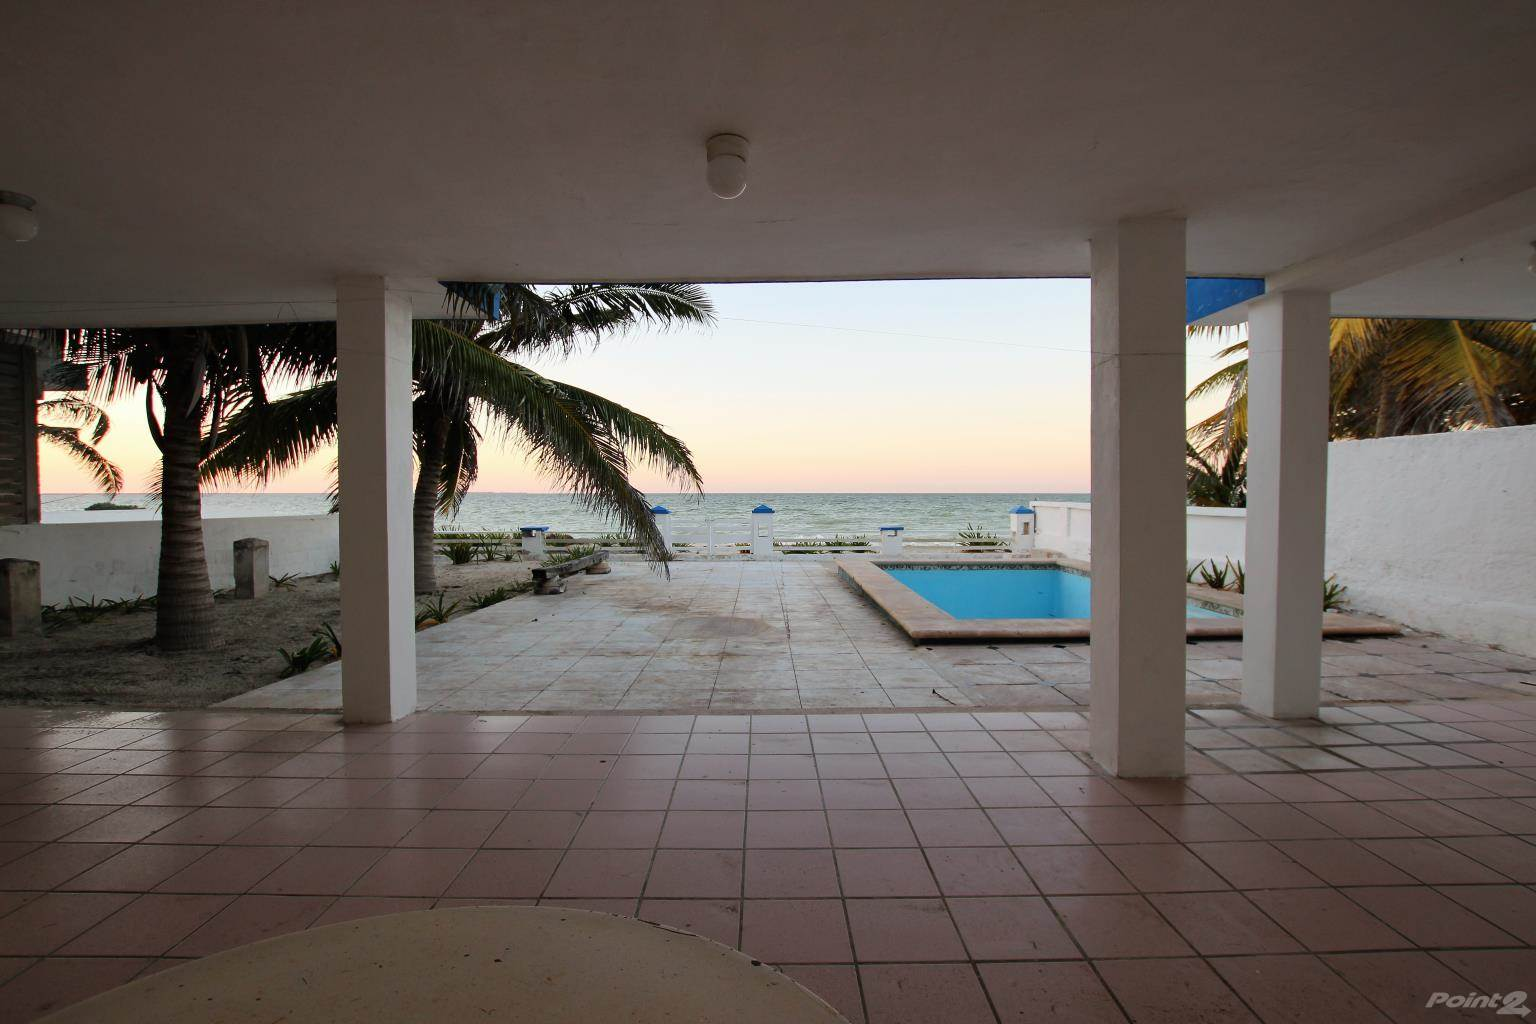 Progreso Real Estate, find Residential properties for sale